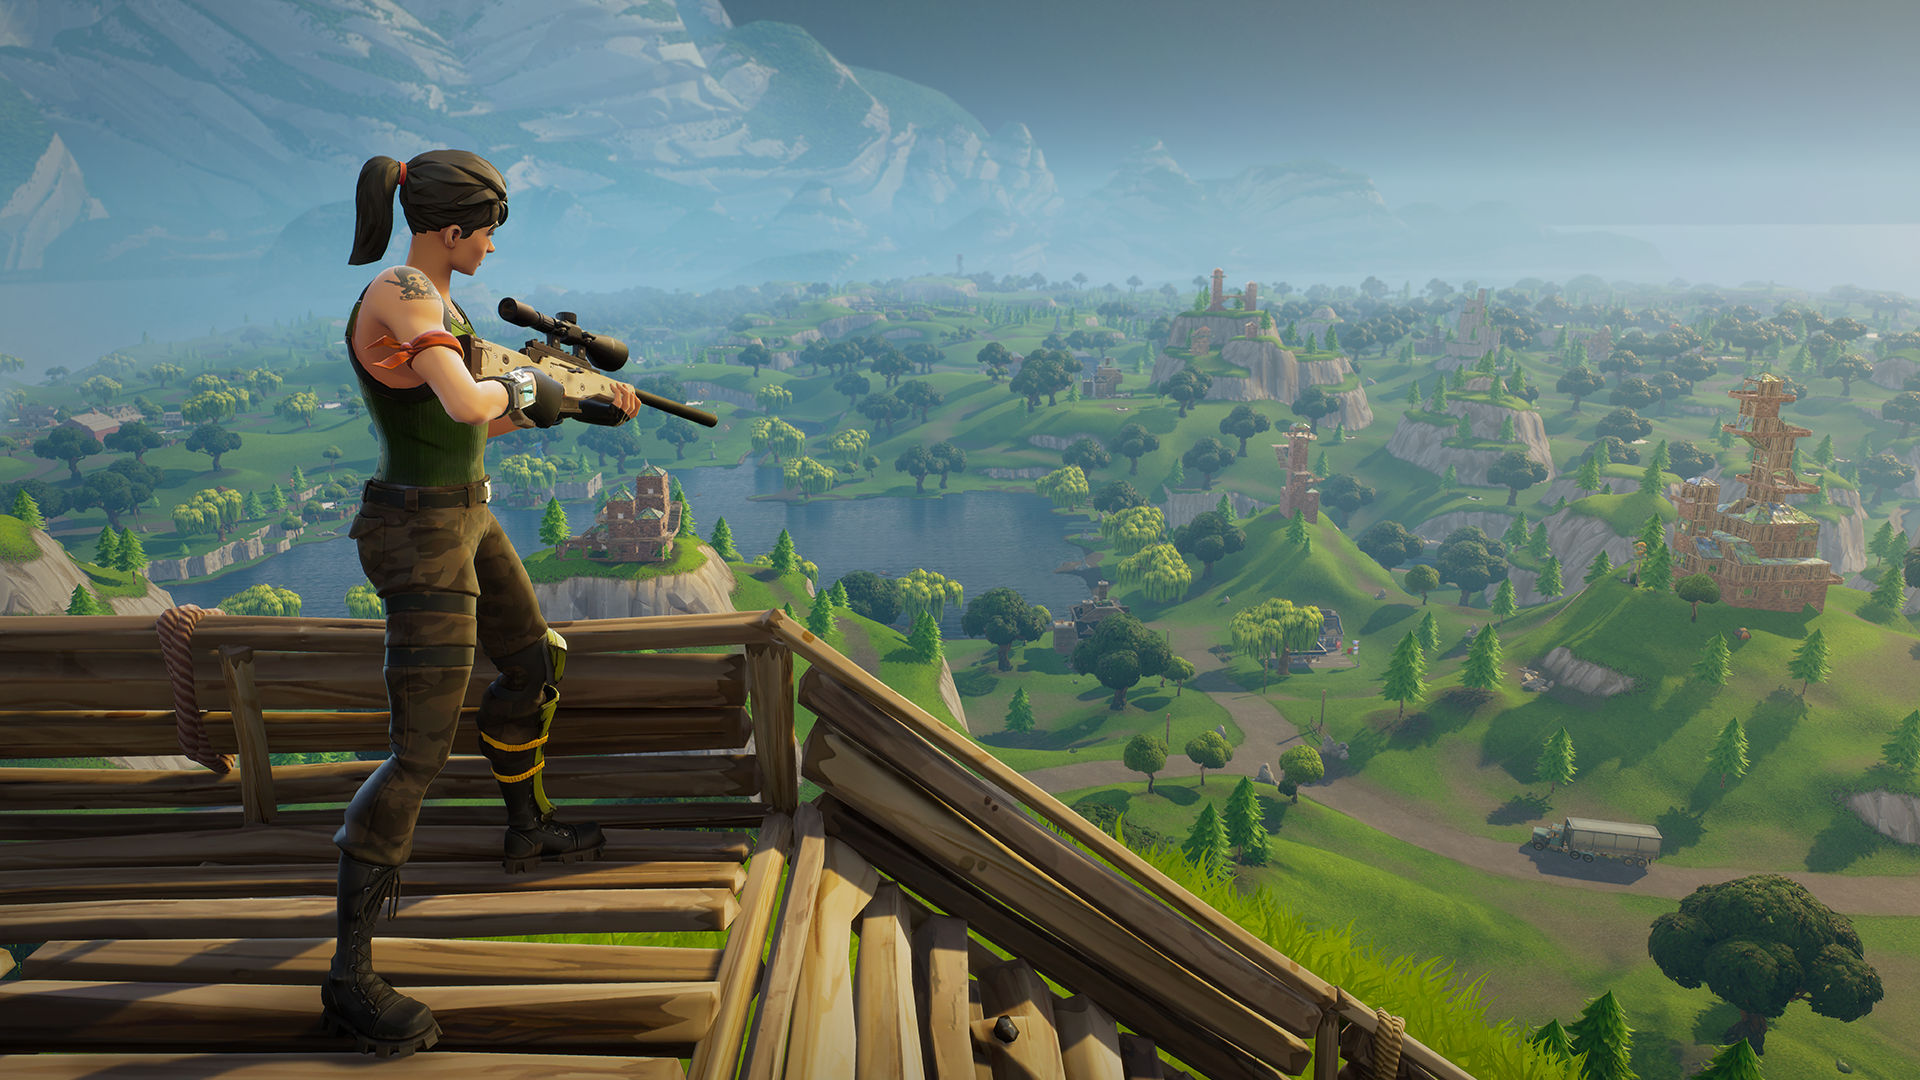 Fortnite Help Epic Games epic games commits to support free speech in fortnite amidst